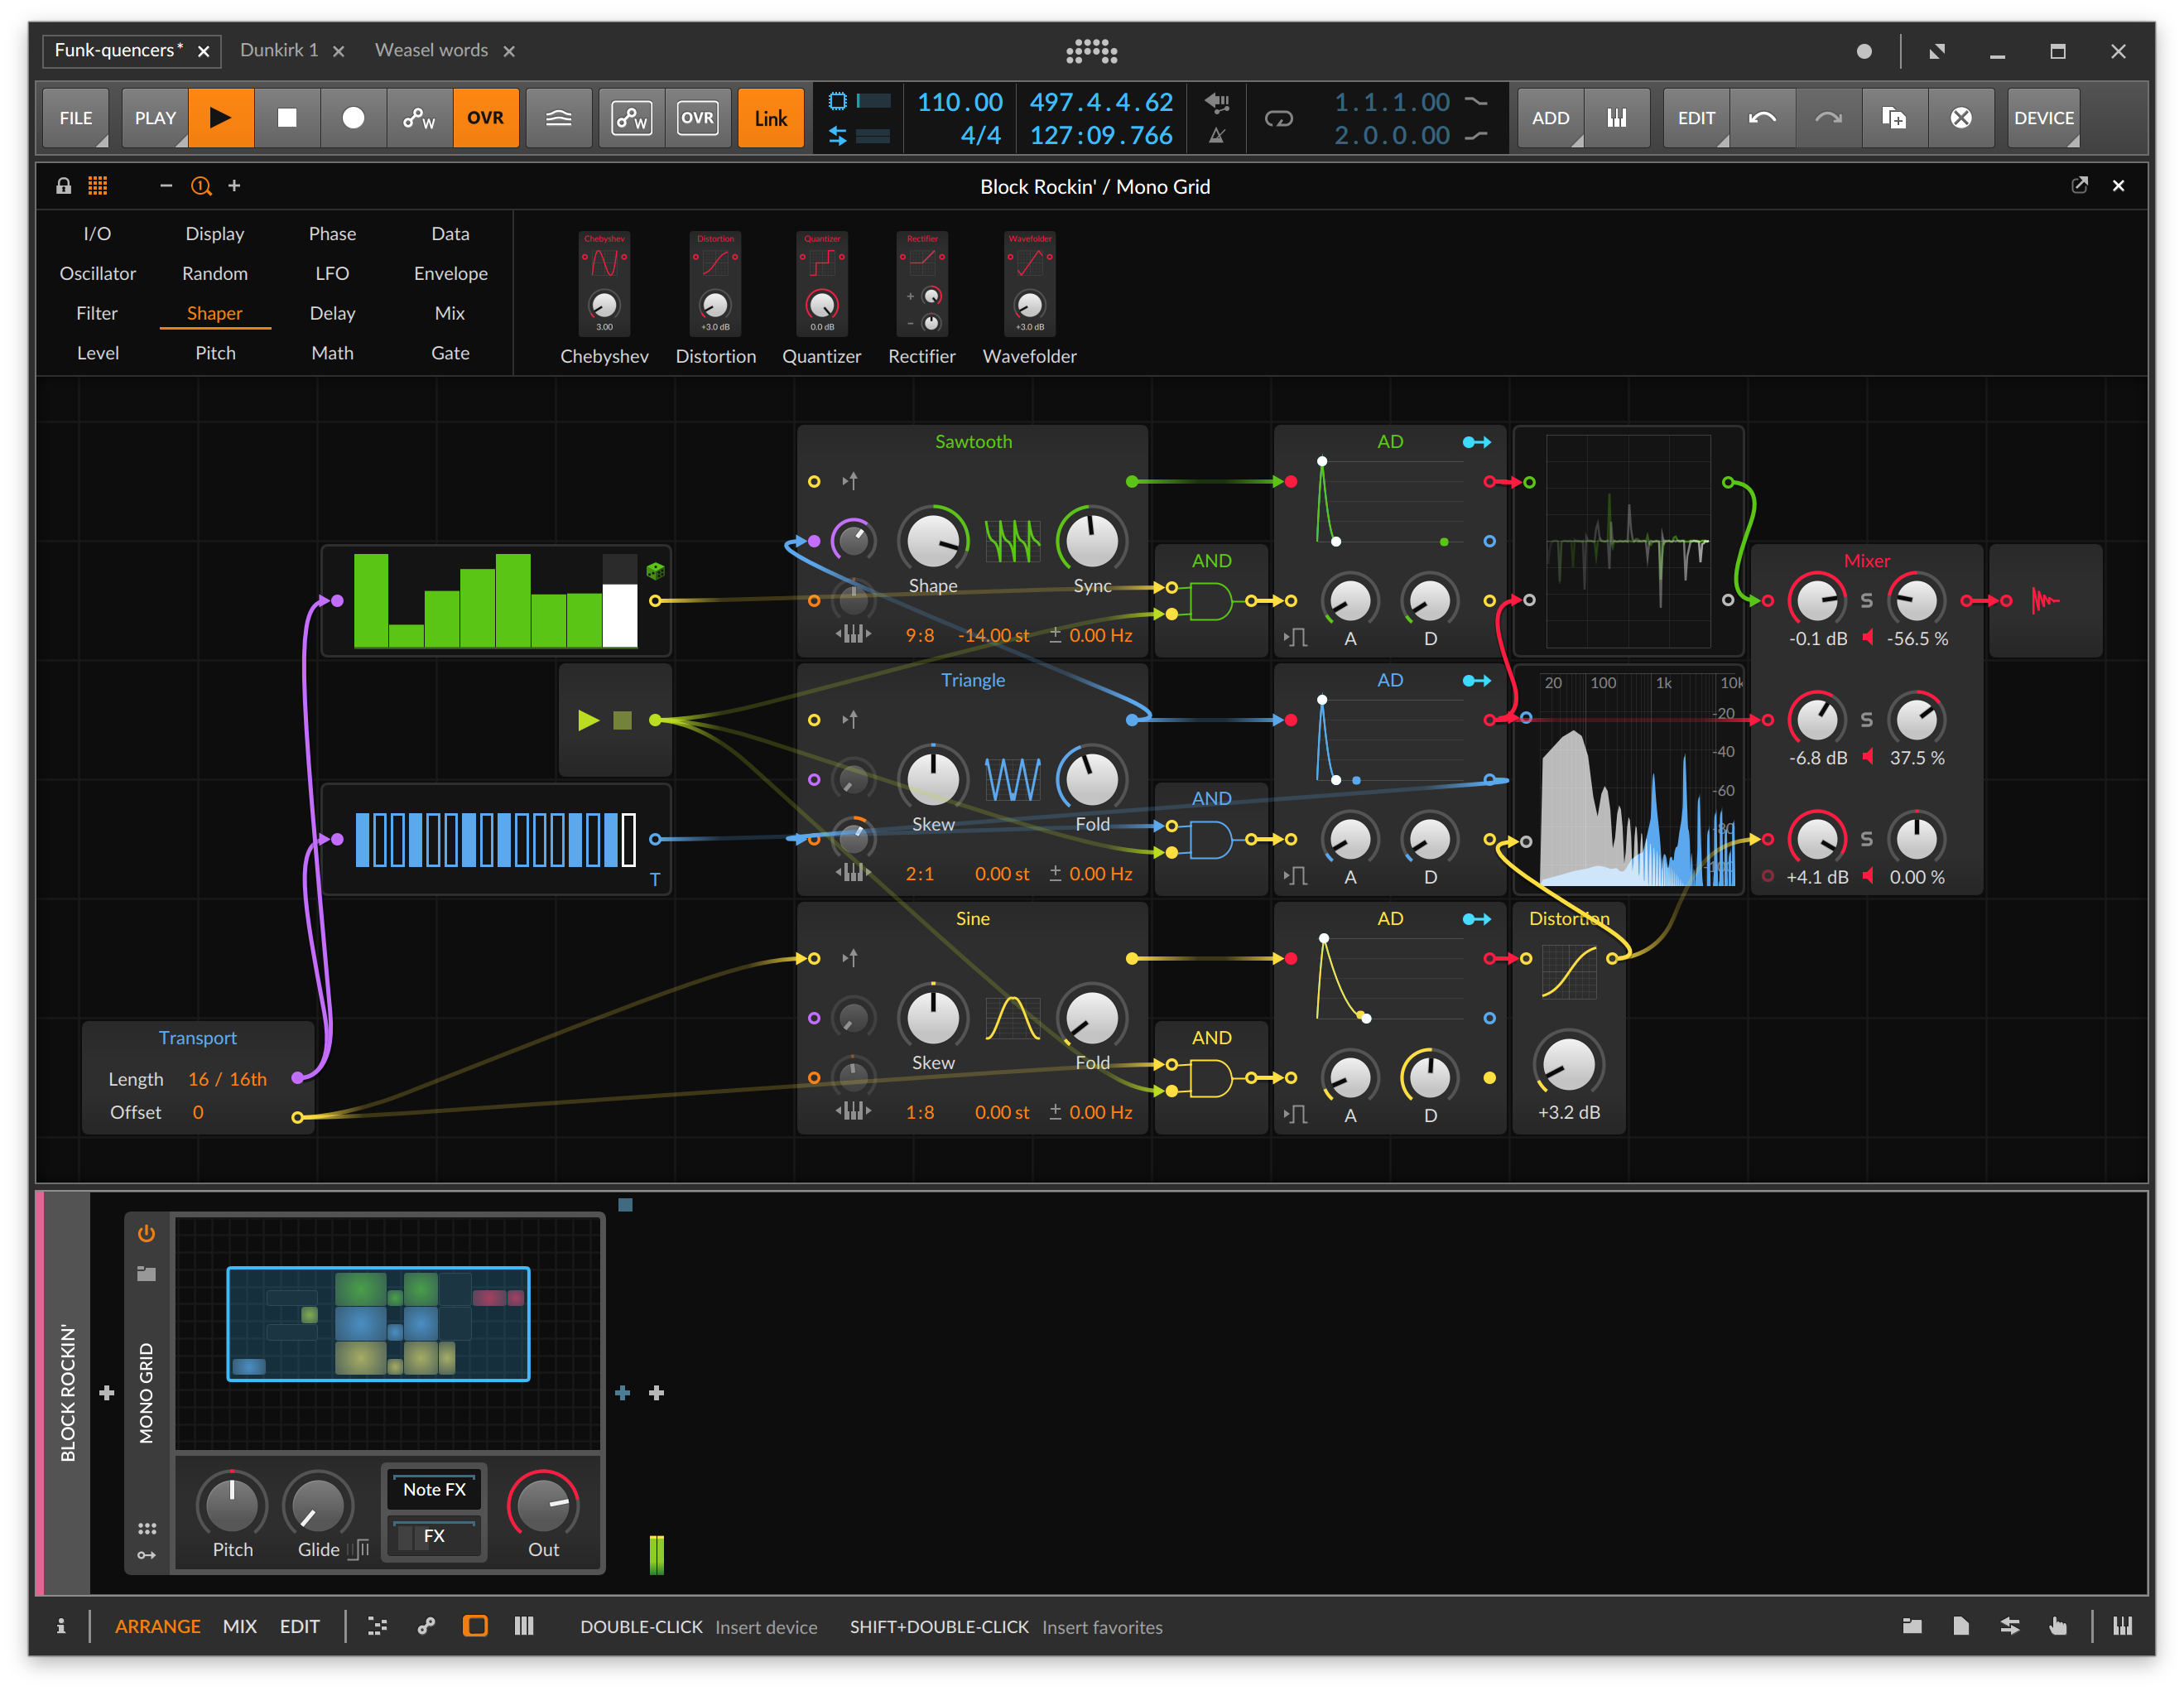 Bitwig Studio is about to deliver on a fully modular core in